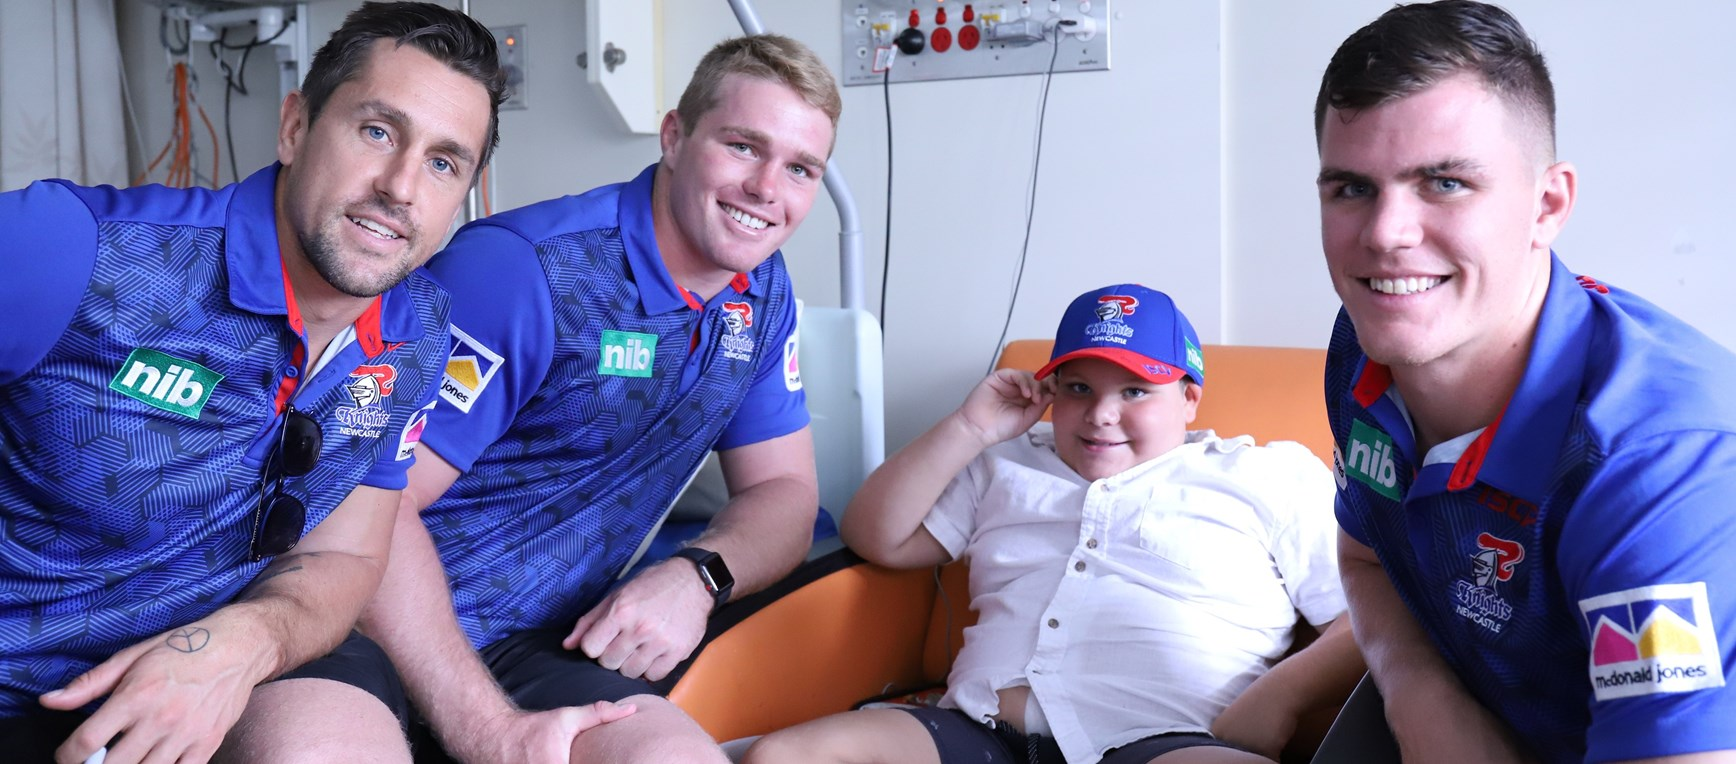 Smiles all round as Knights visit Children's hospital